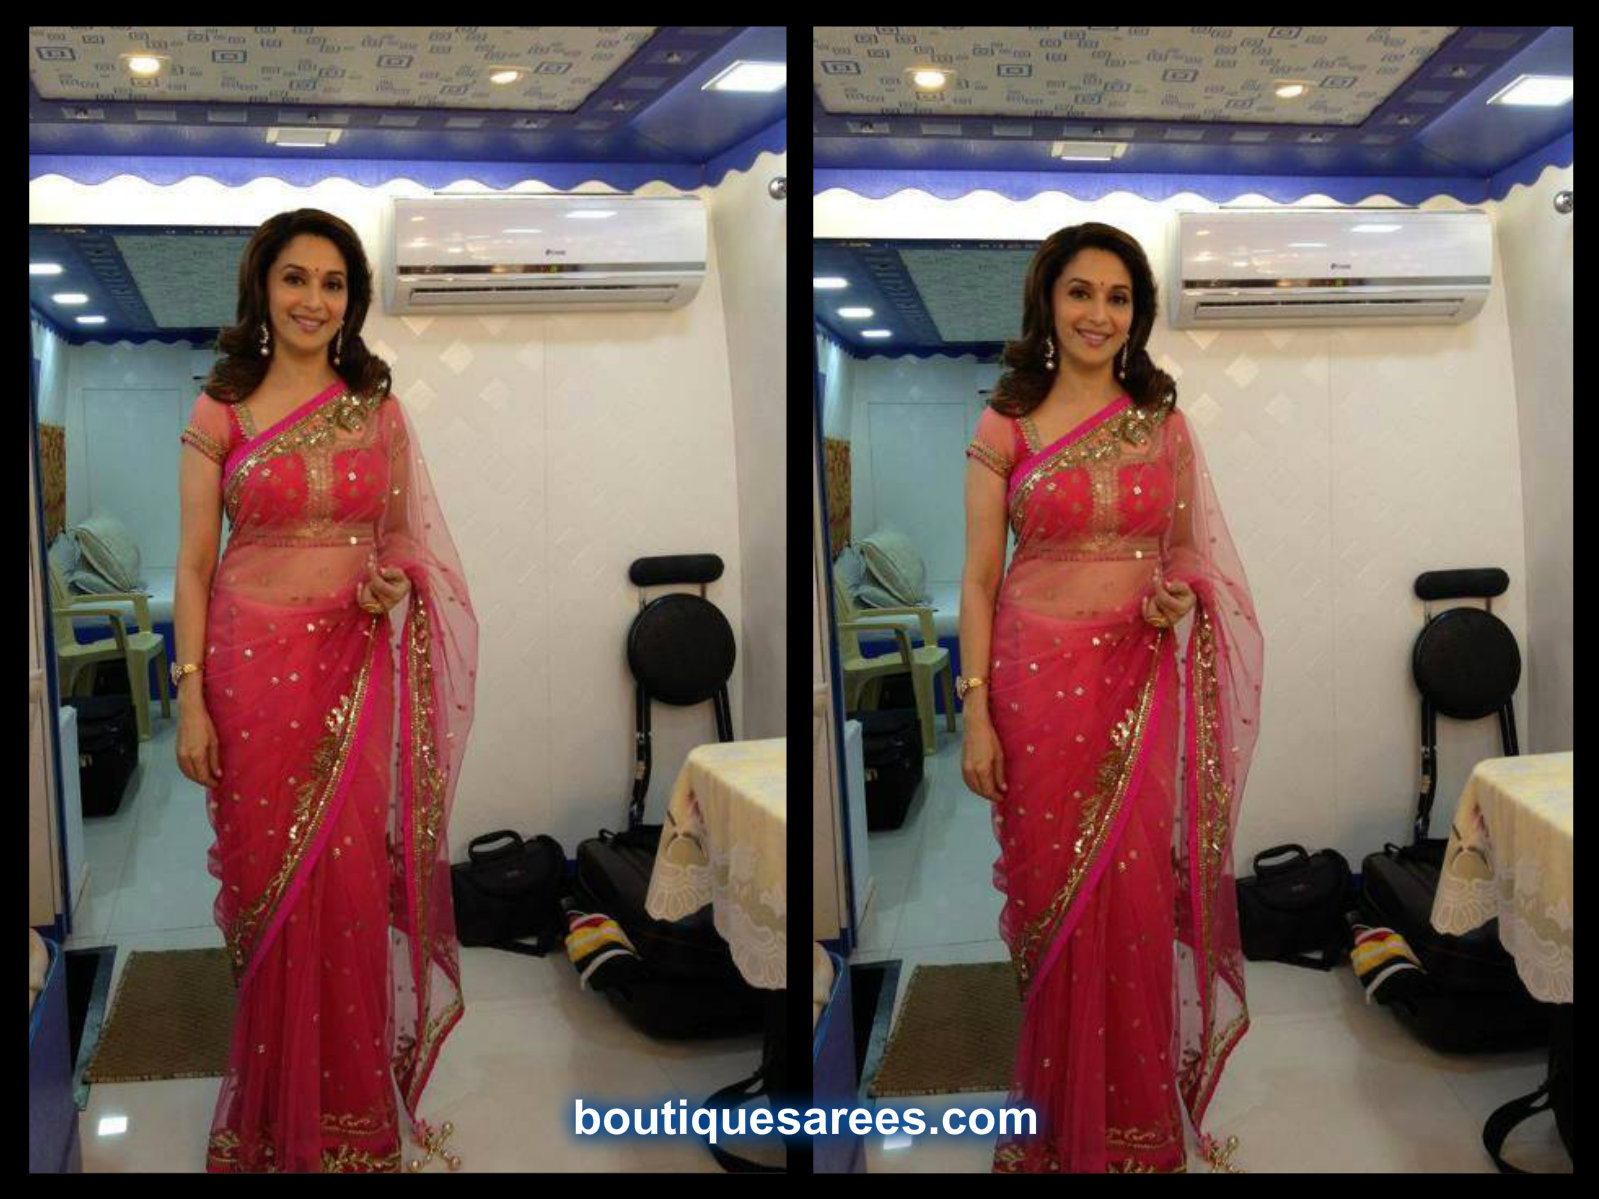 madhuri dixit in pink saree